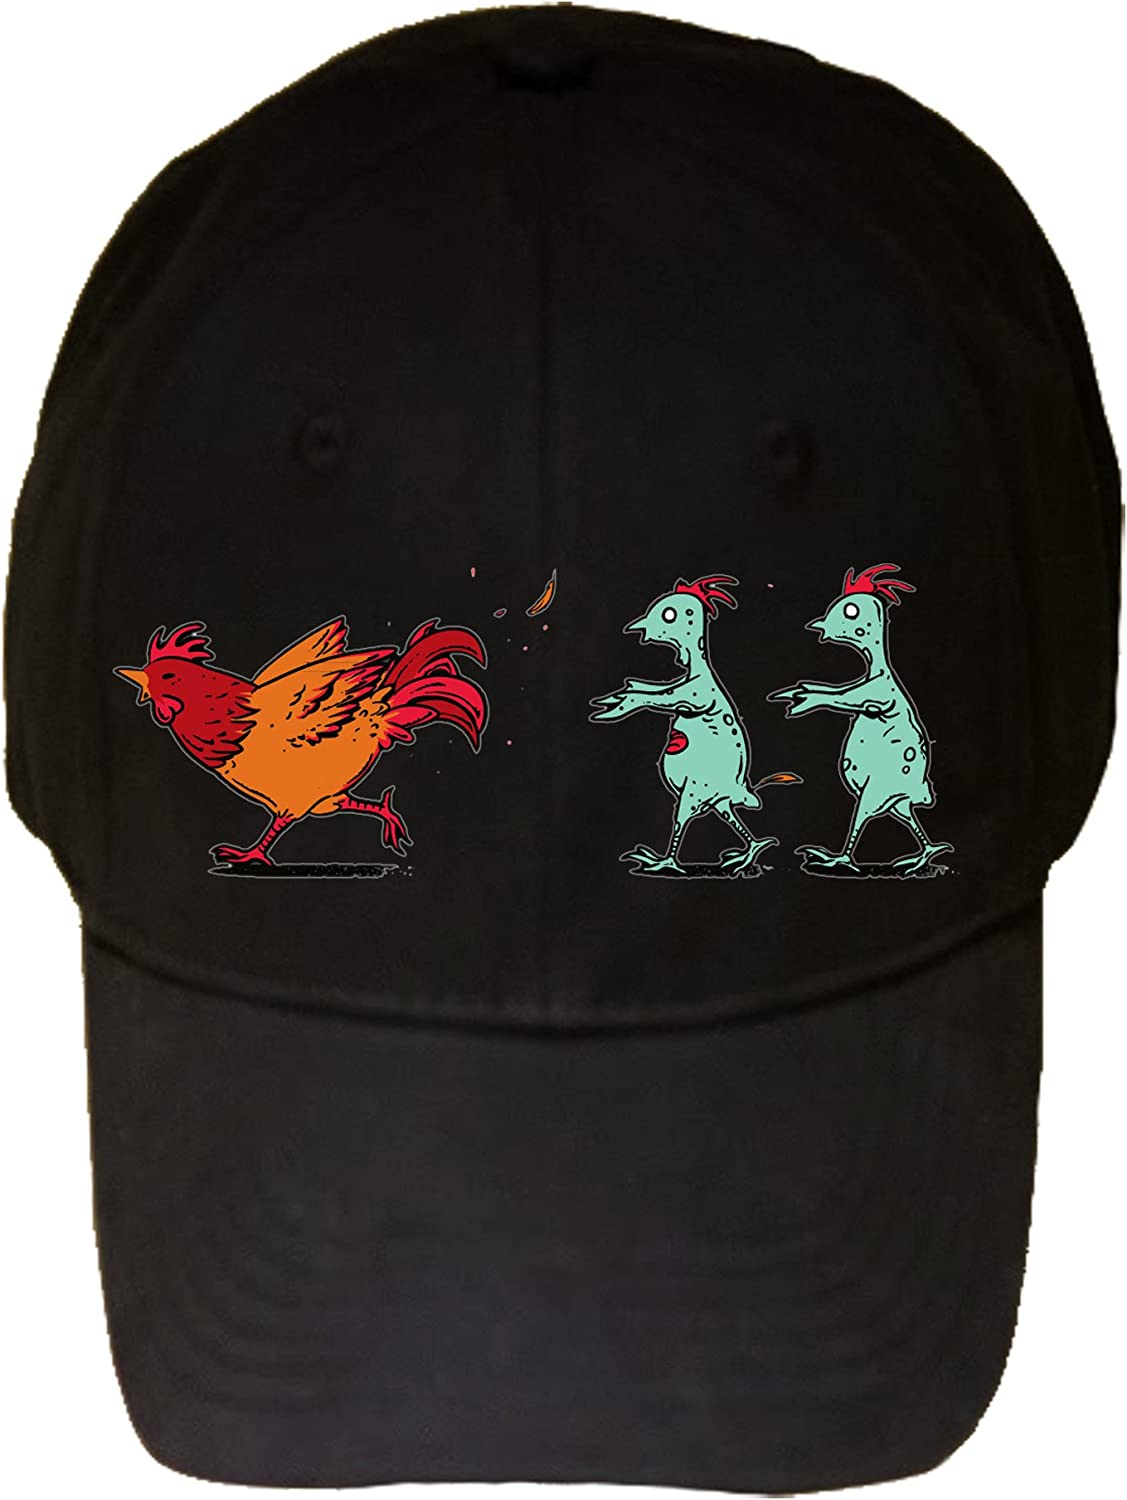 Zombie Attack Funny Rooster Chicken Running from Zombies - 100% Adjustable Cap Hat Black